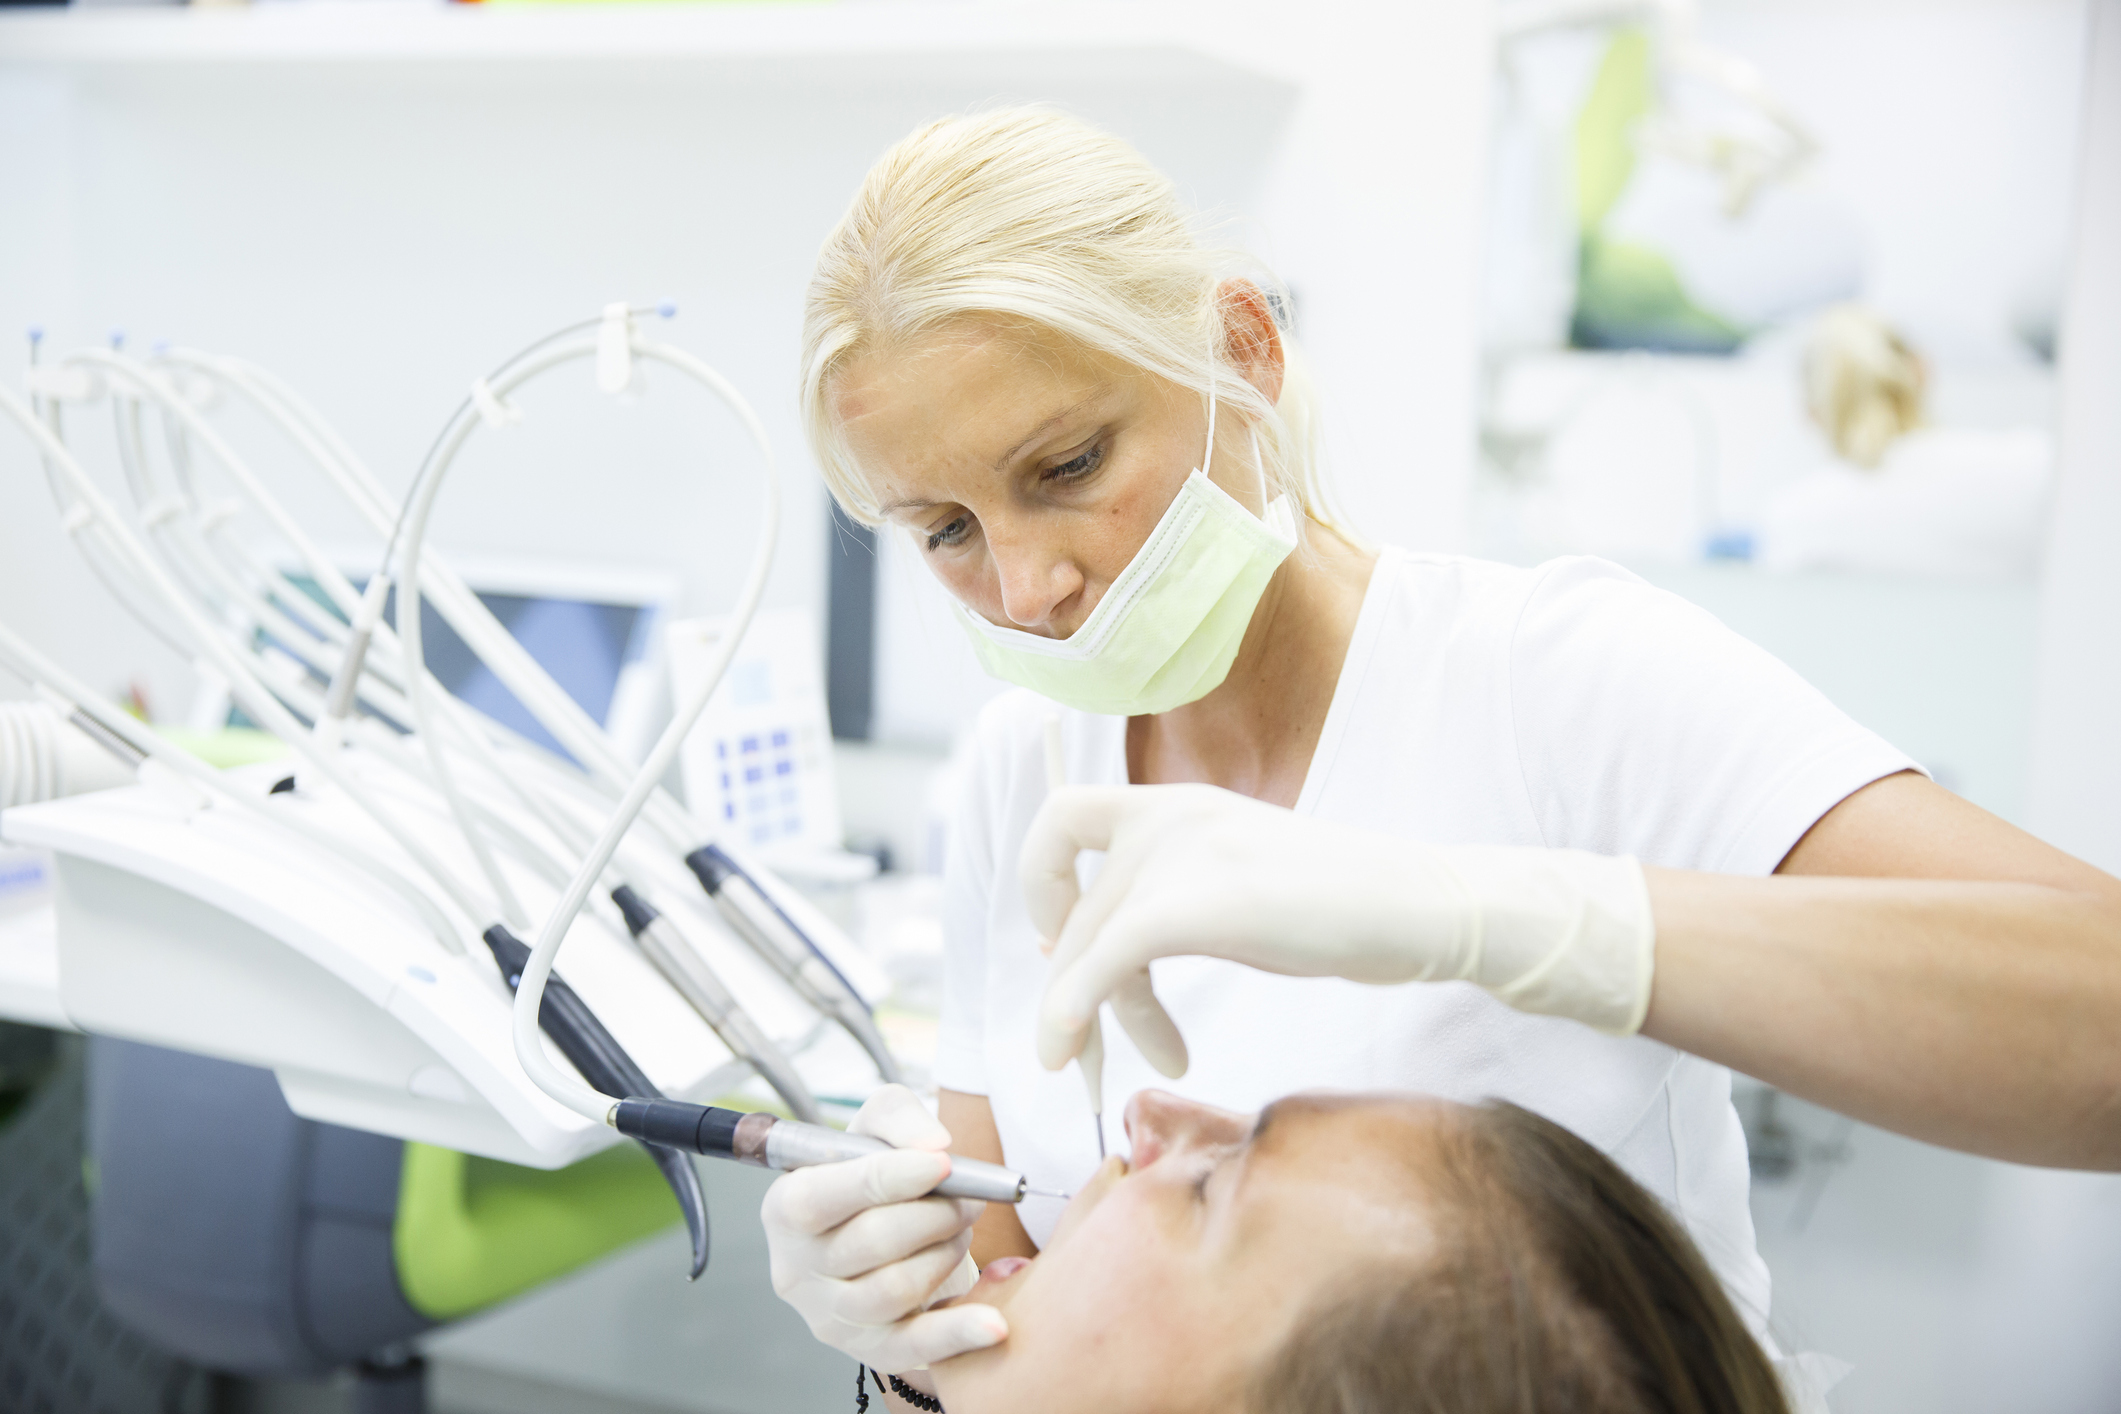 Suctioning During Dental Visits Because of COVID-19